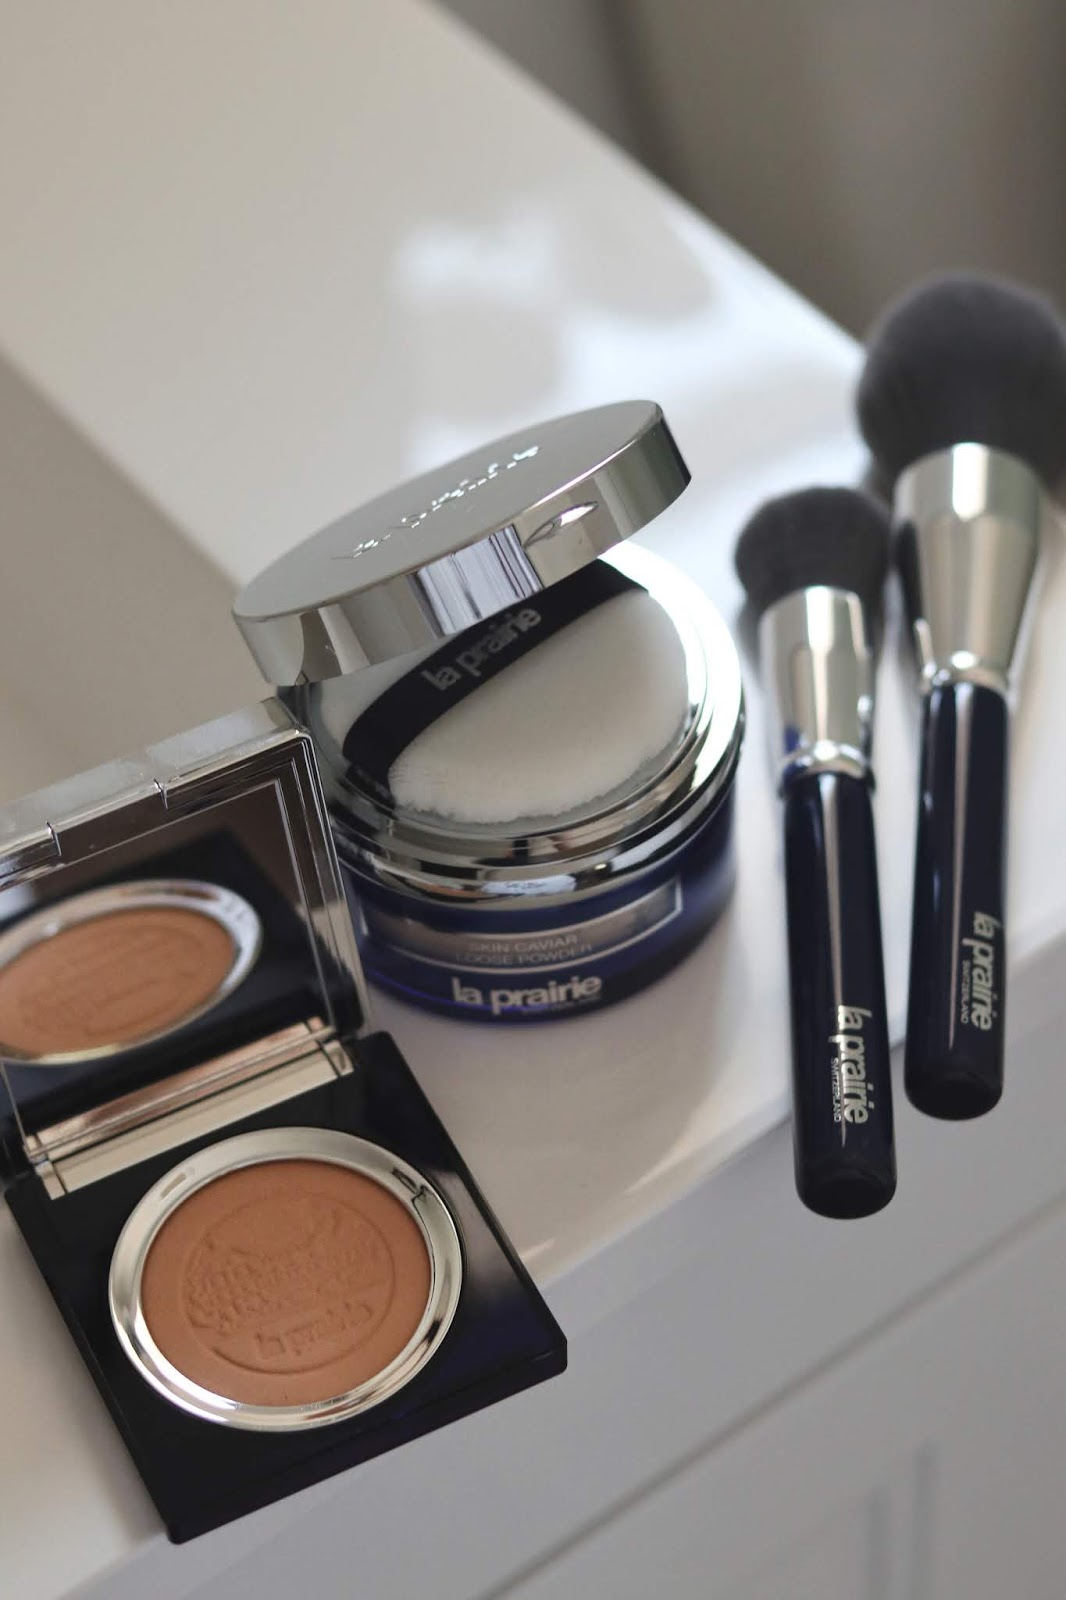 La Prairie Skin Caviar Powder: A quick review